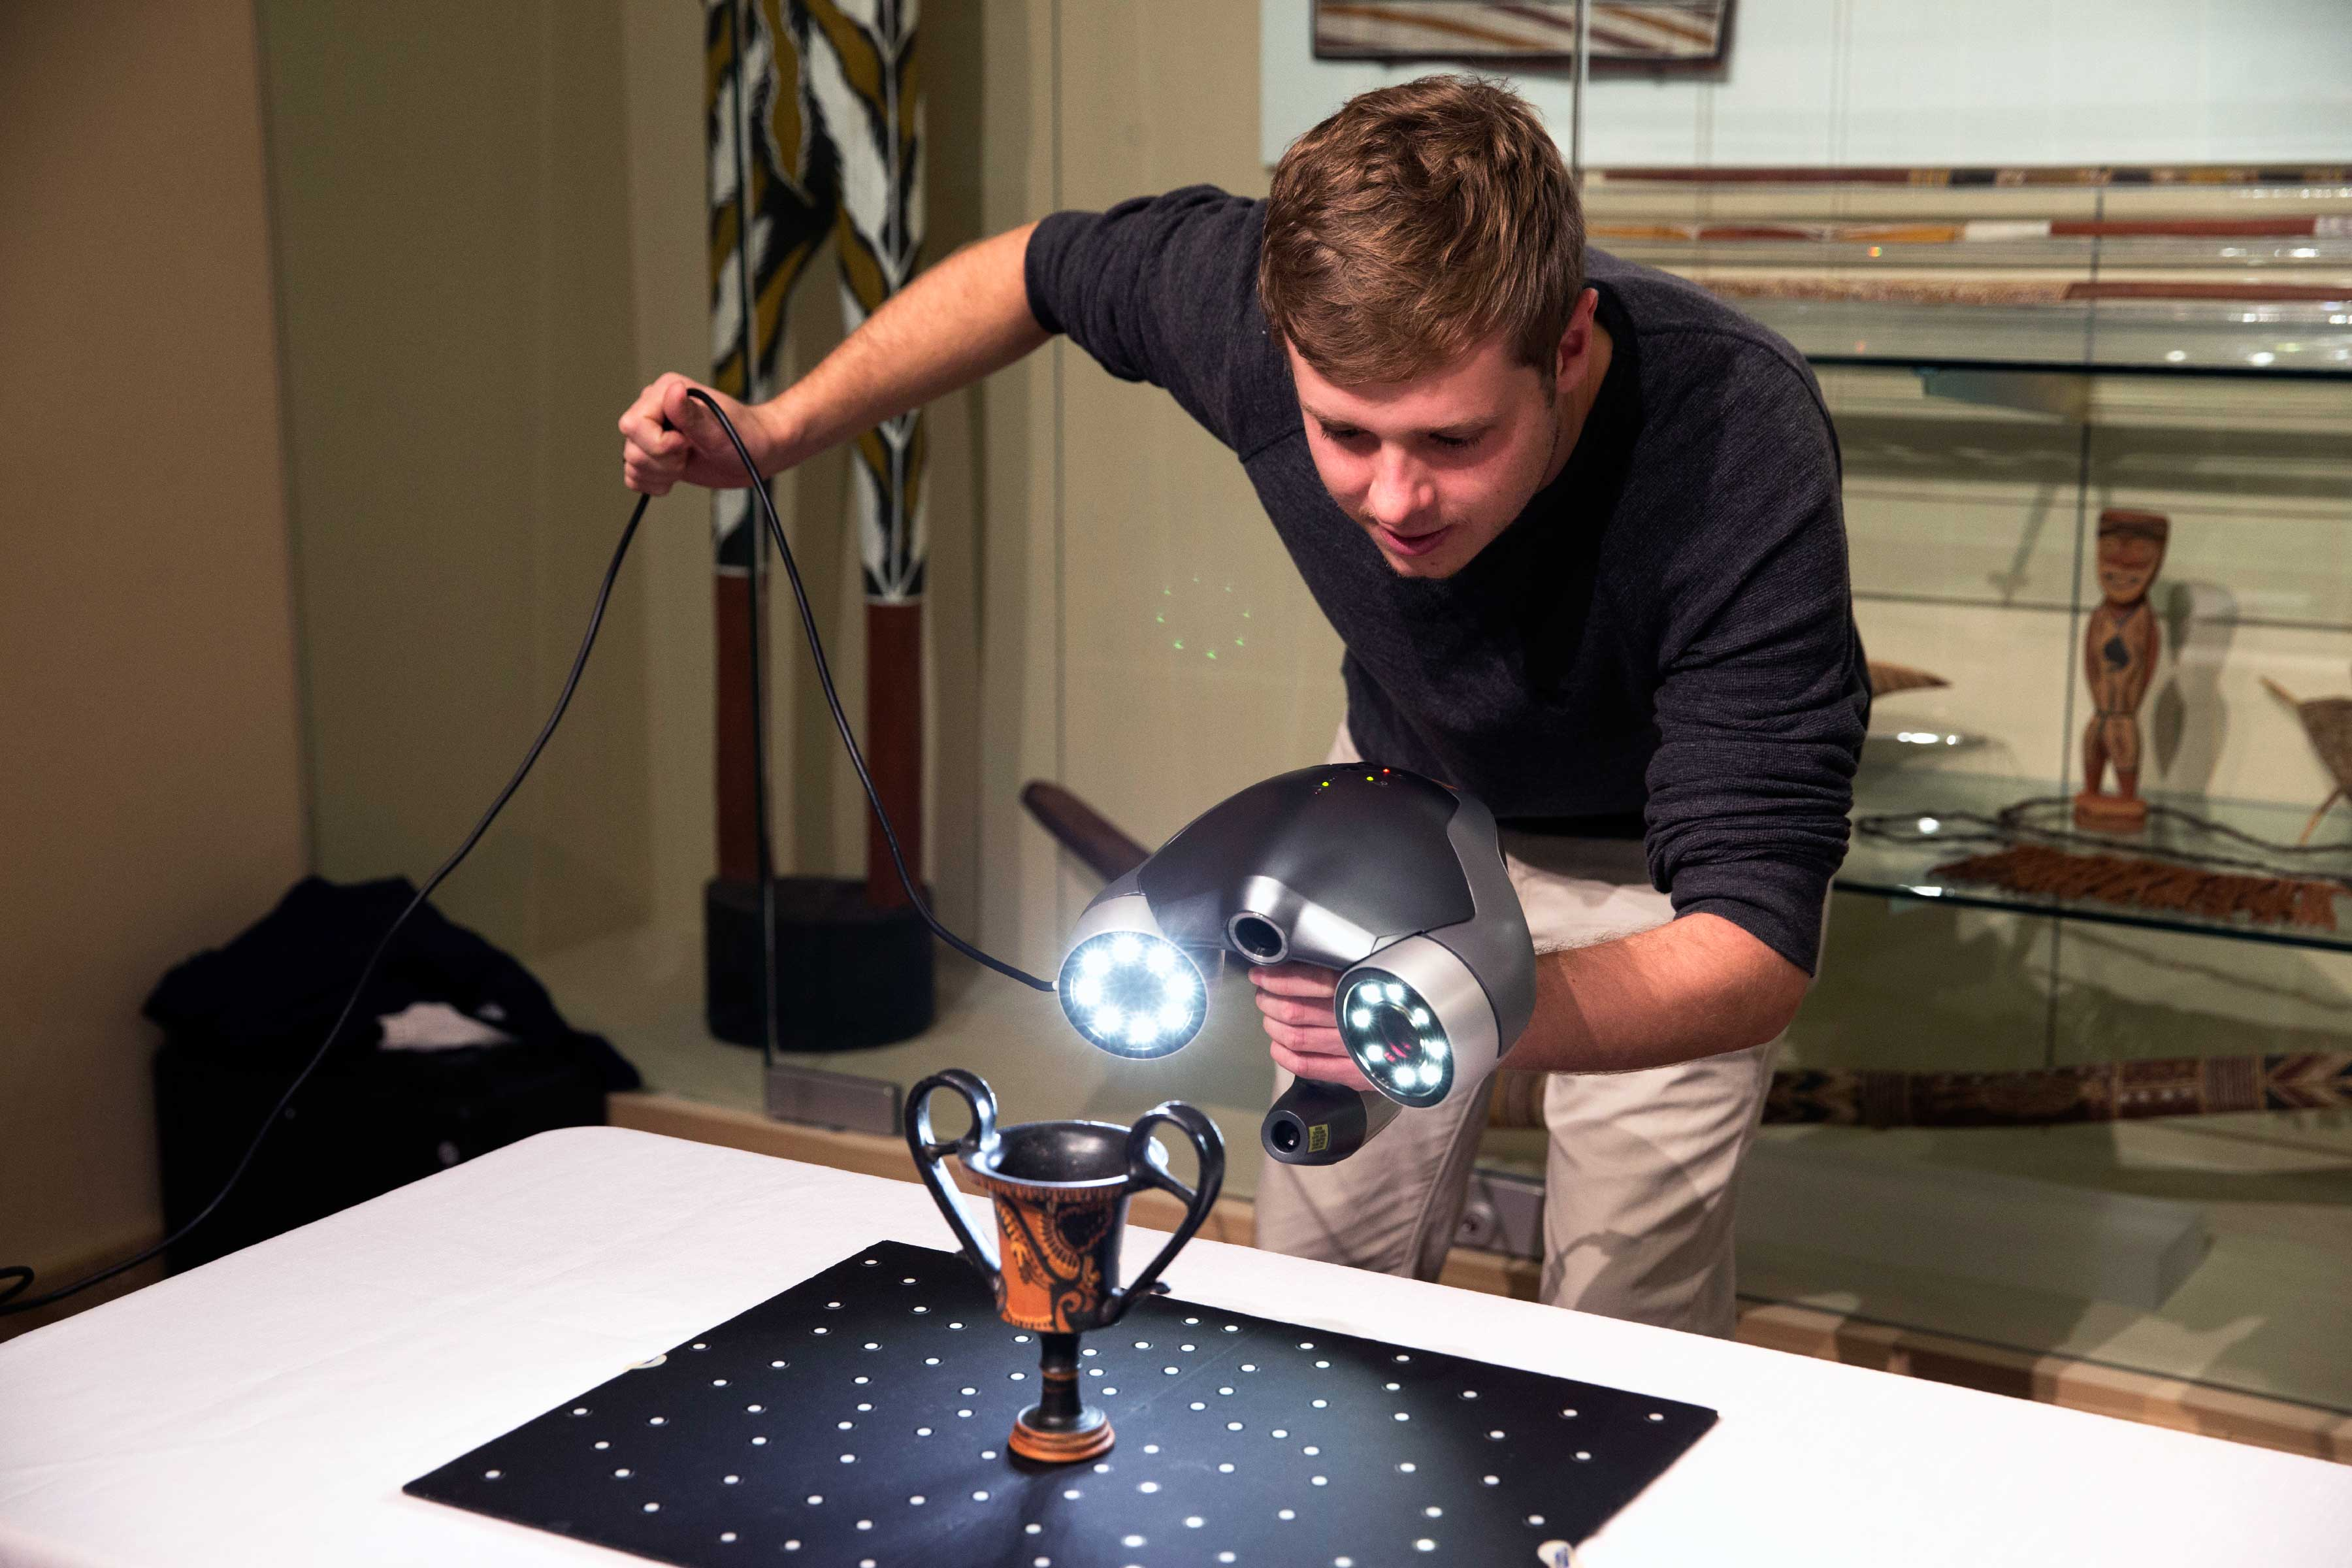 Lewis aims a 3-D scanner at a fourth-century vase atop a reflective mat that provides reference points for the scanner to build a virtual 3-D space. (Photo by Dan Addison, University Communications)